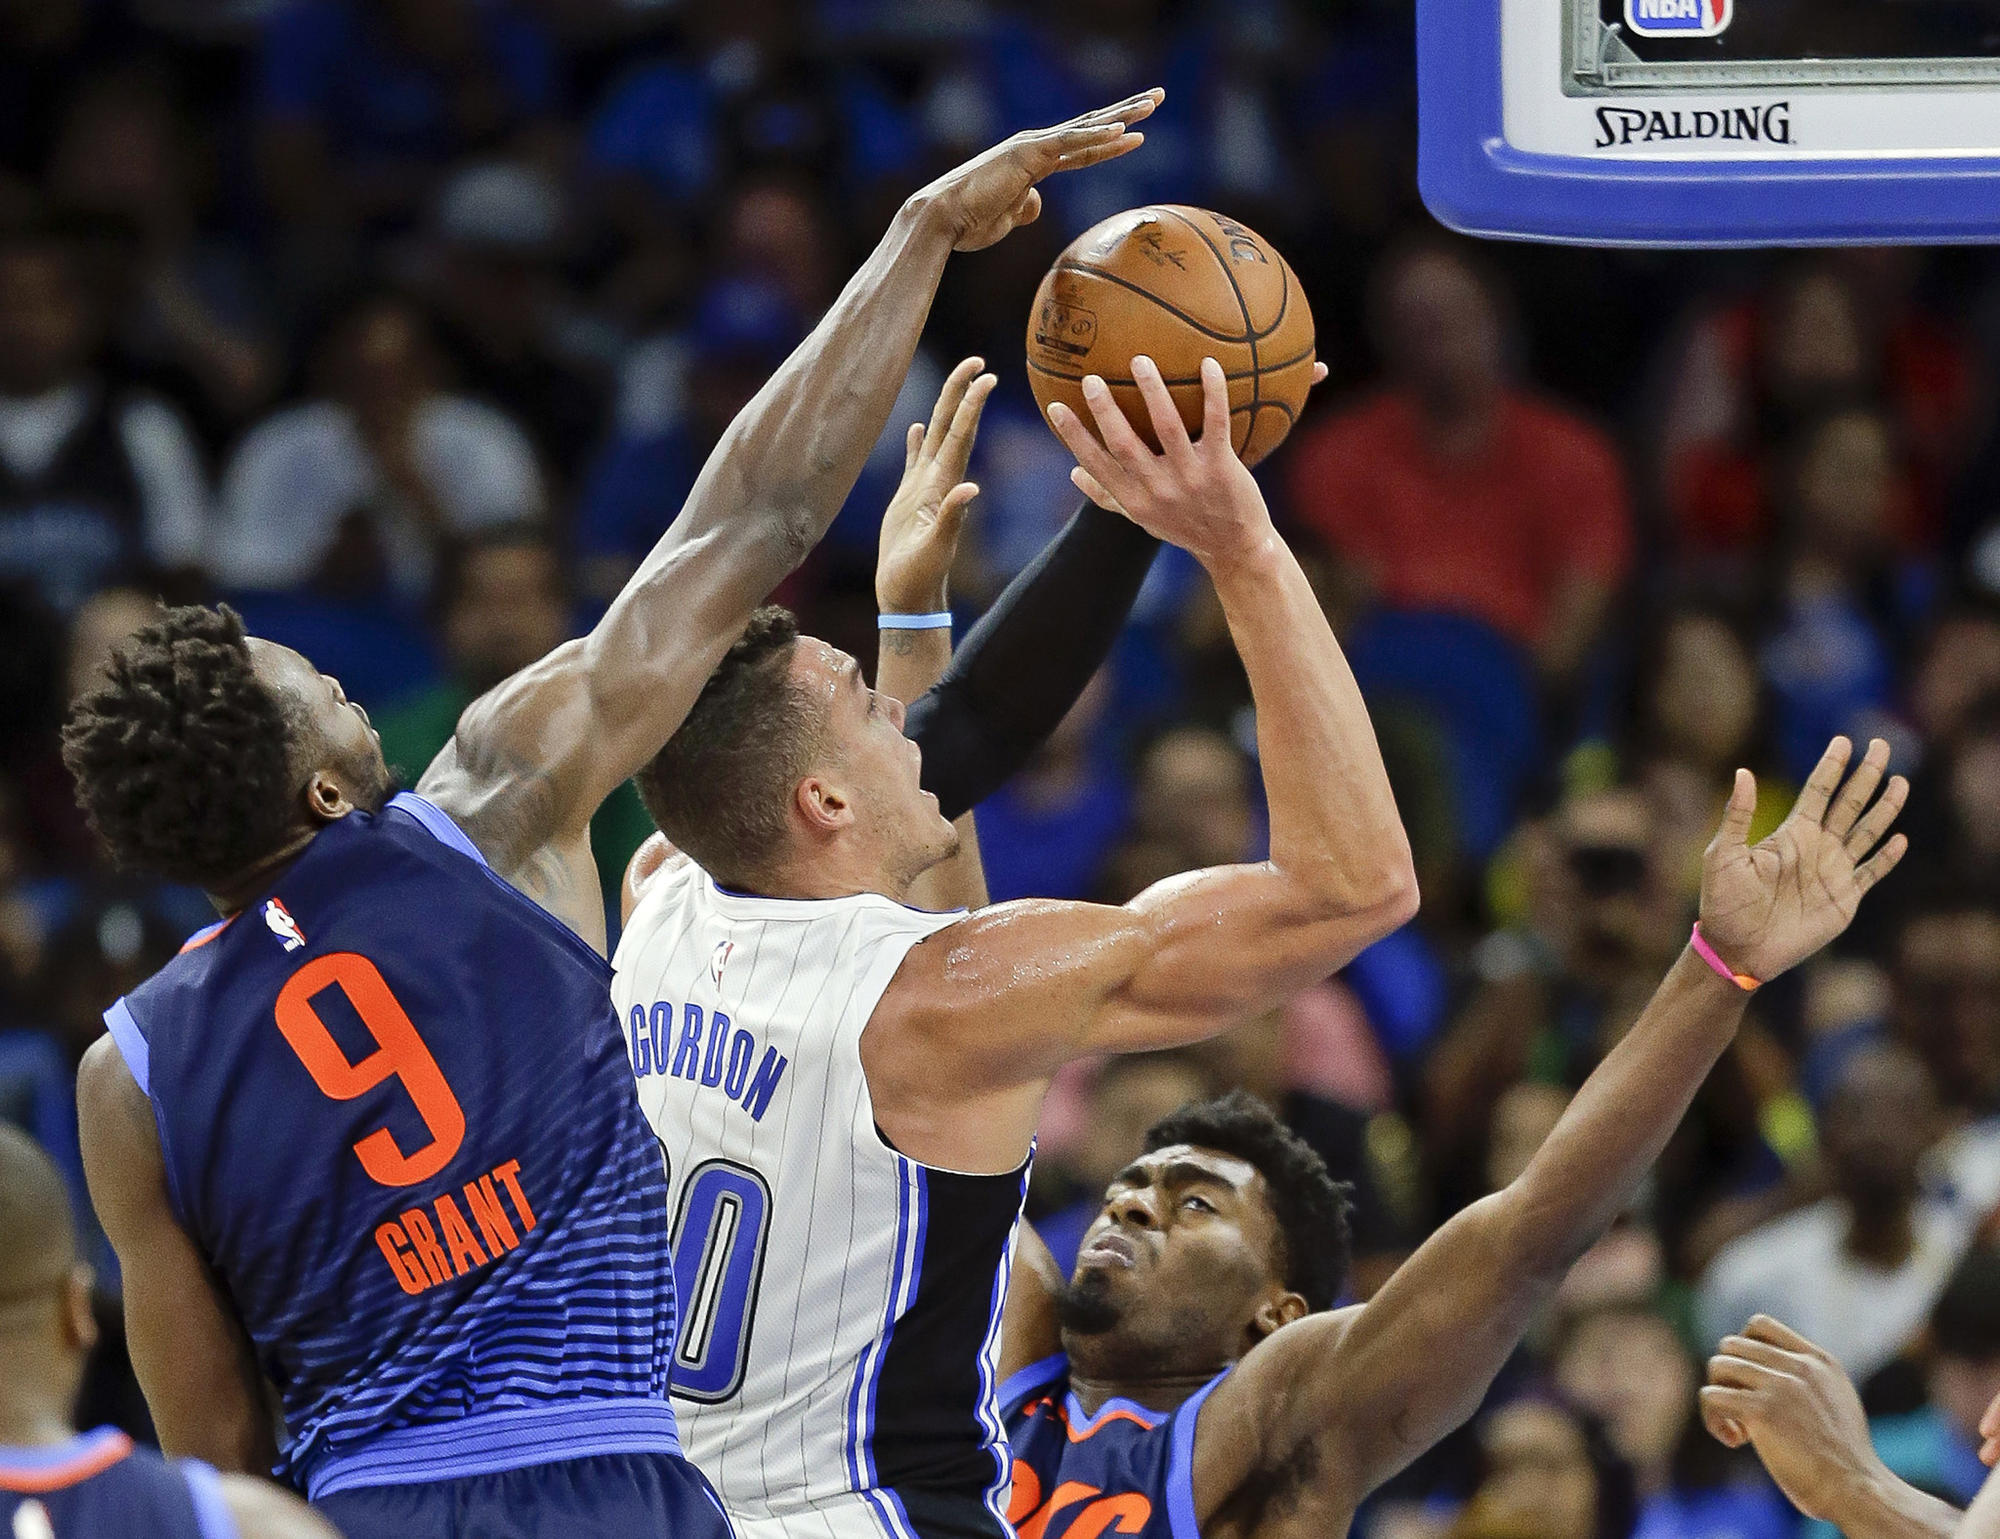 Orlando ends losing streak with victory over Thunder